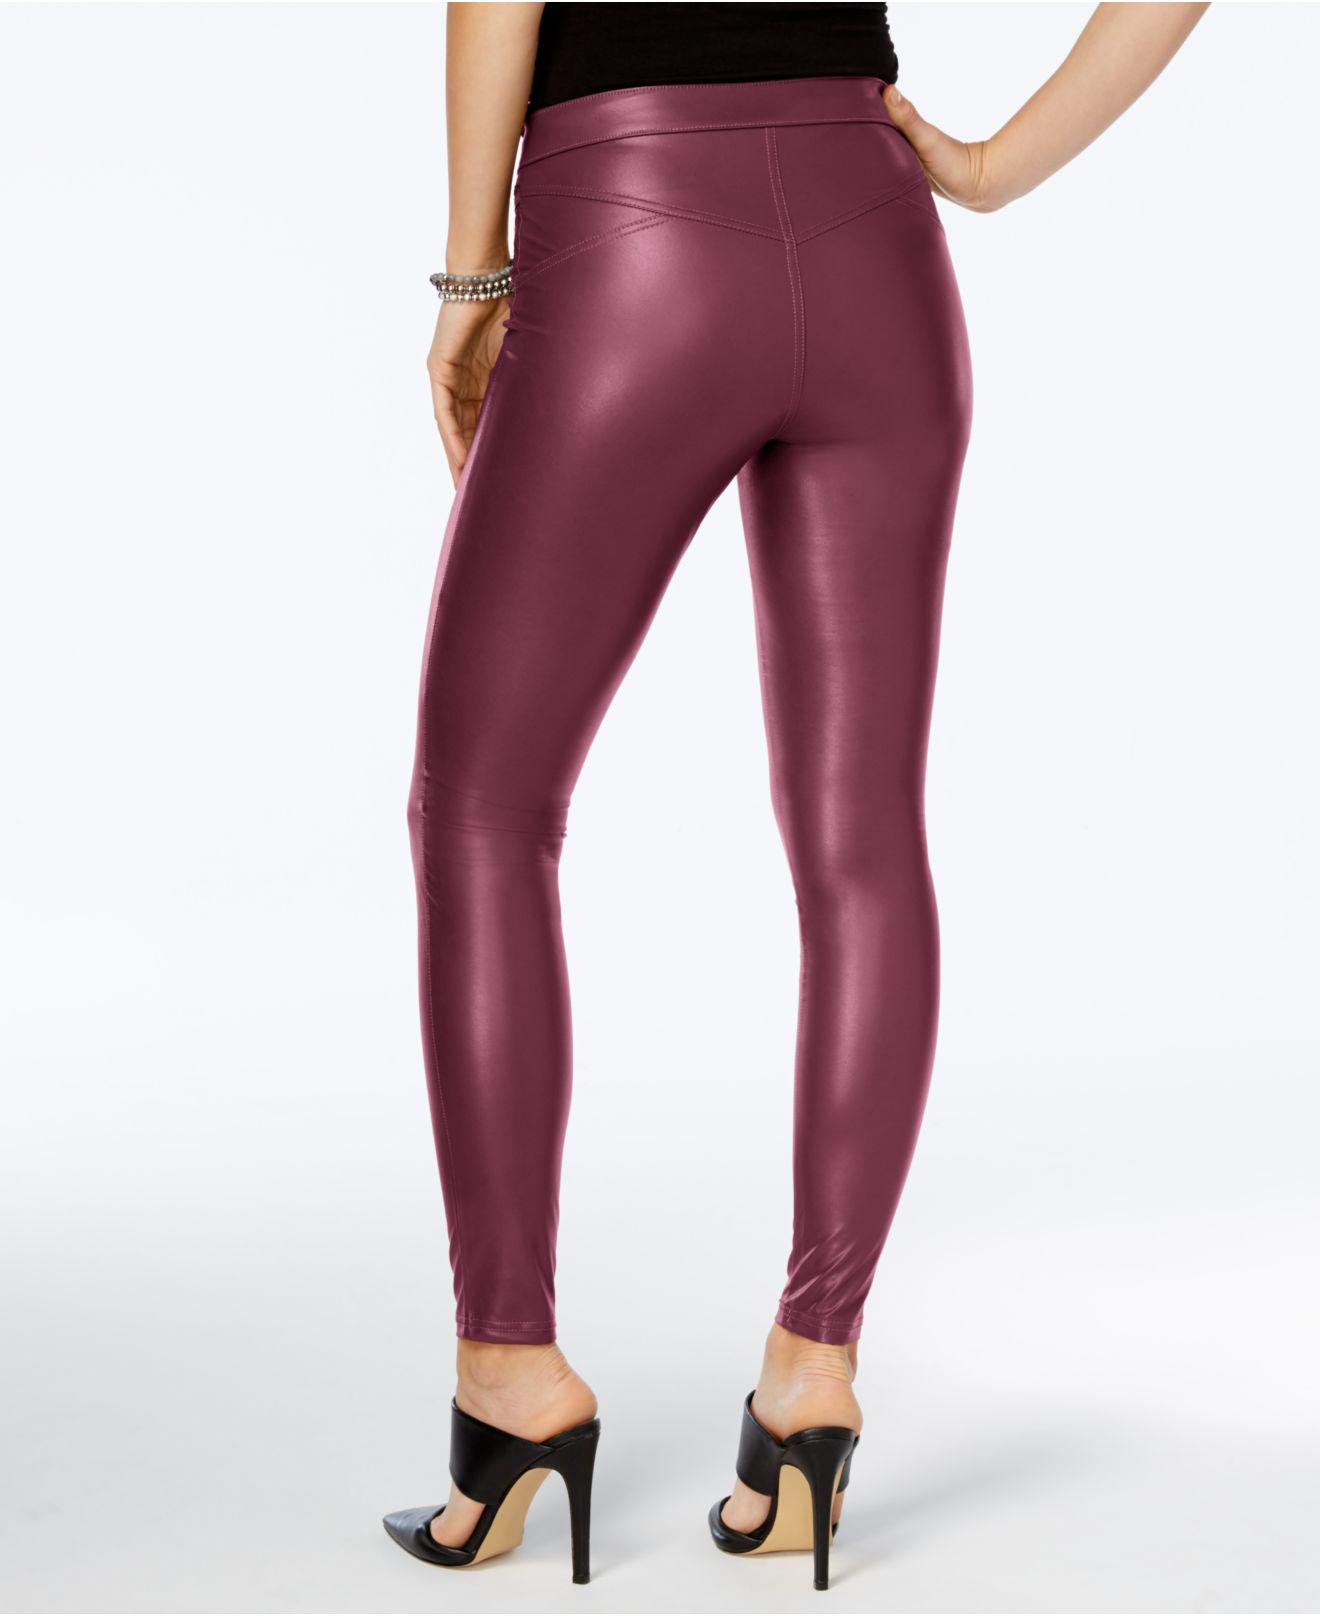 Women's Clothing Hue Womens Faux-Leather Leggings Napa Clothing, Shoes & Accessories